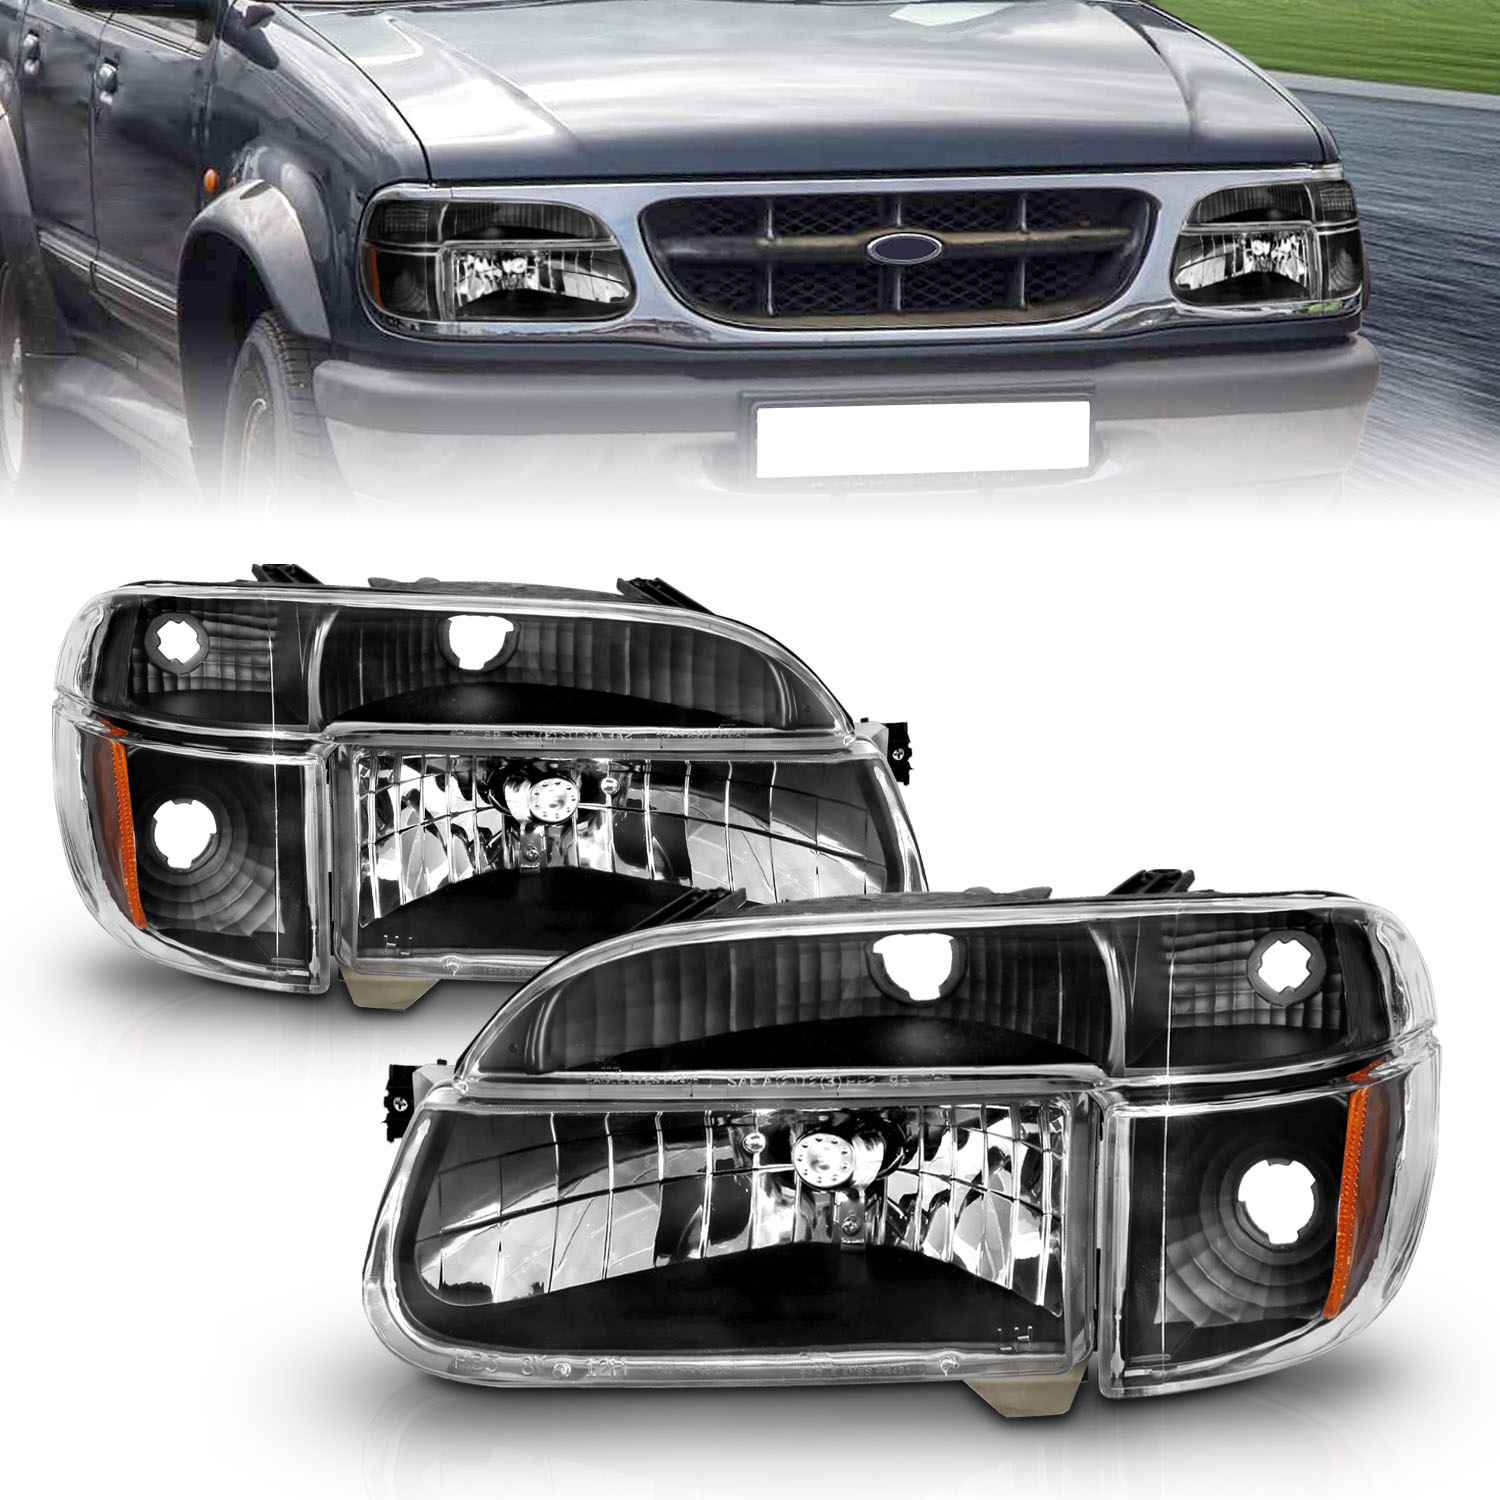 Anzo USA 111039 Crystal Headlight Set Fits Explorer Explorer (Stripped Chassis)